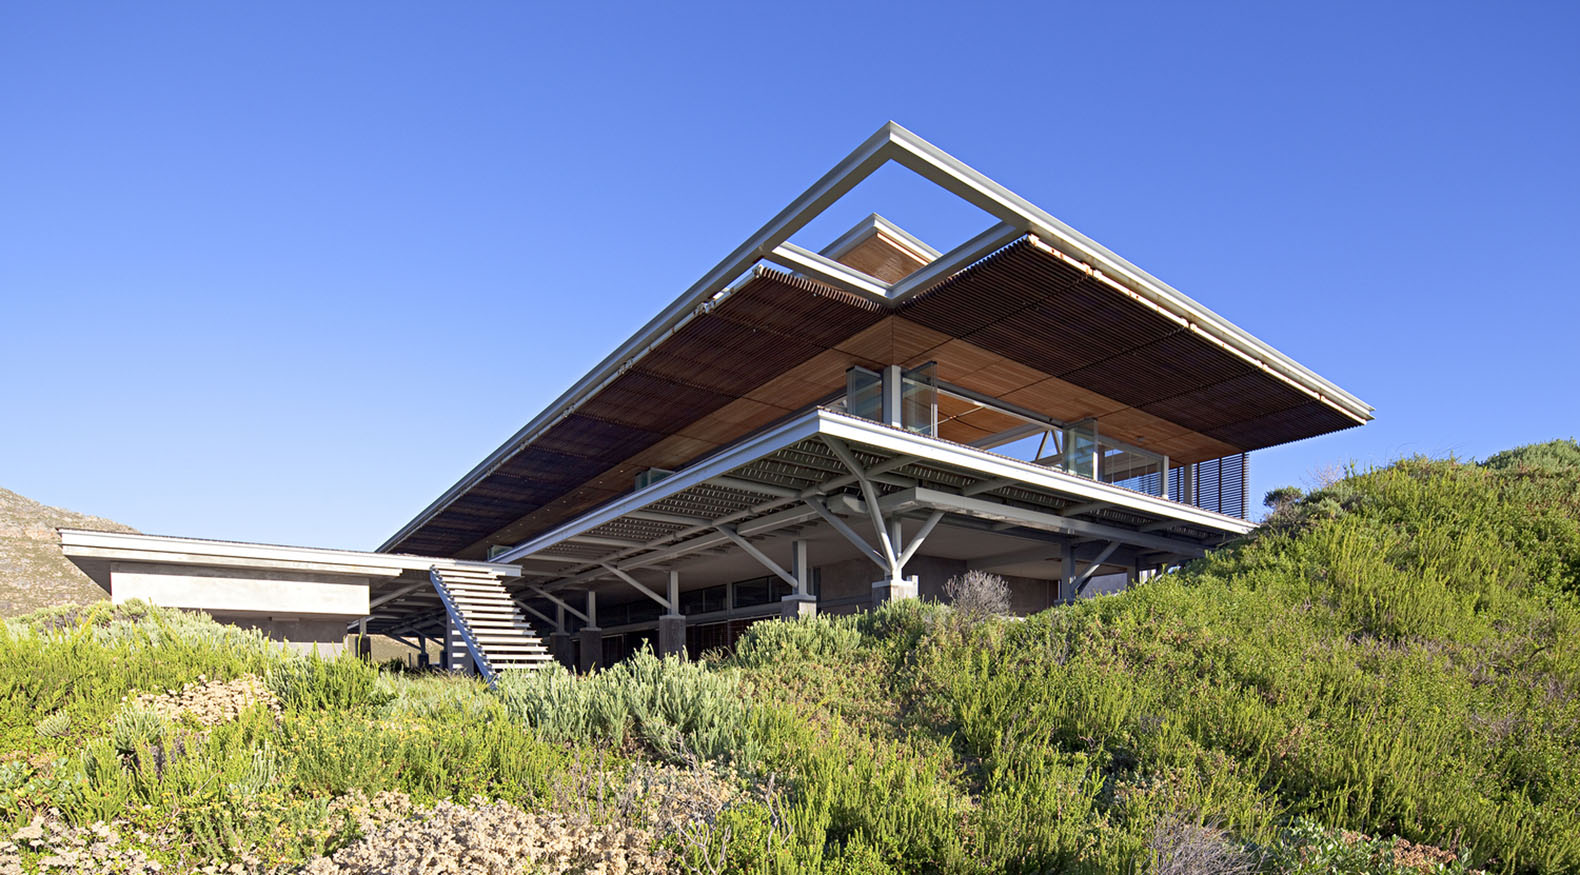 Cape Town Beach Home Controls Natural Light With Powerful Hydraulic Shutters Rooiels Beach House ...